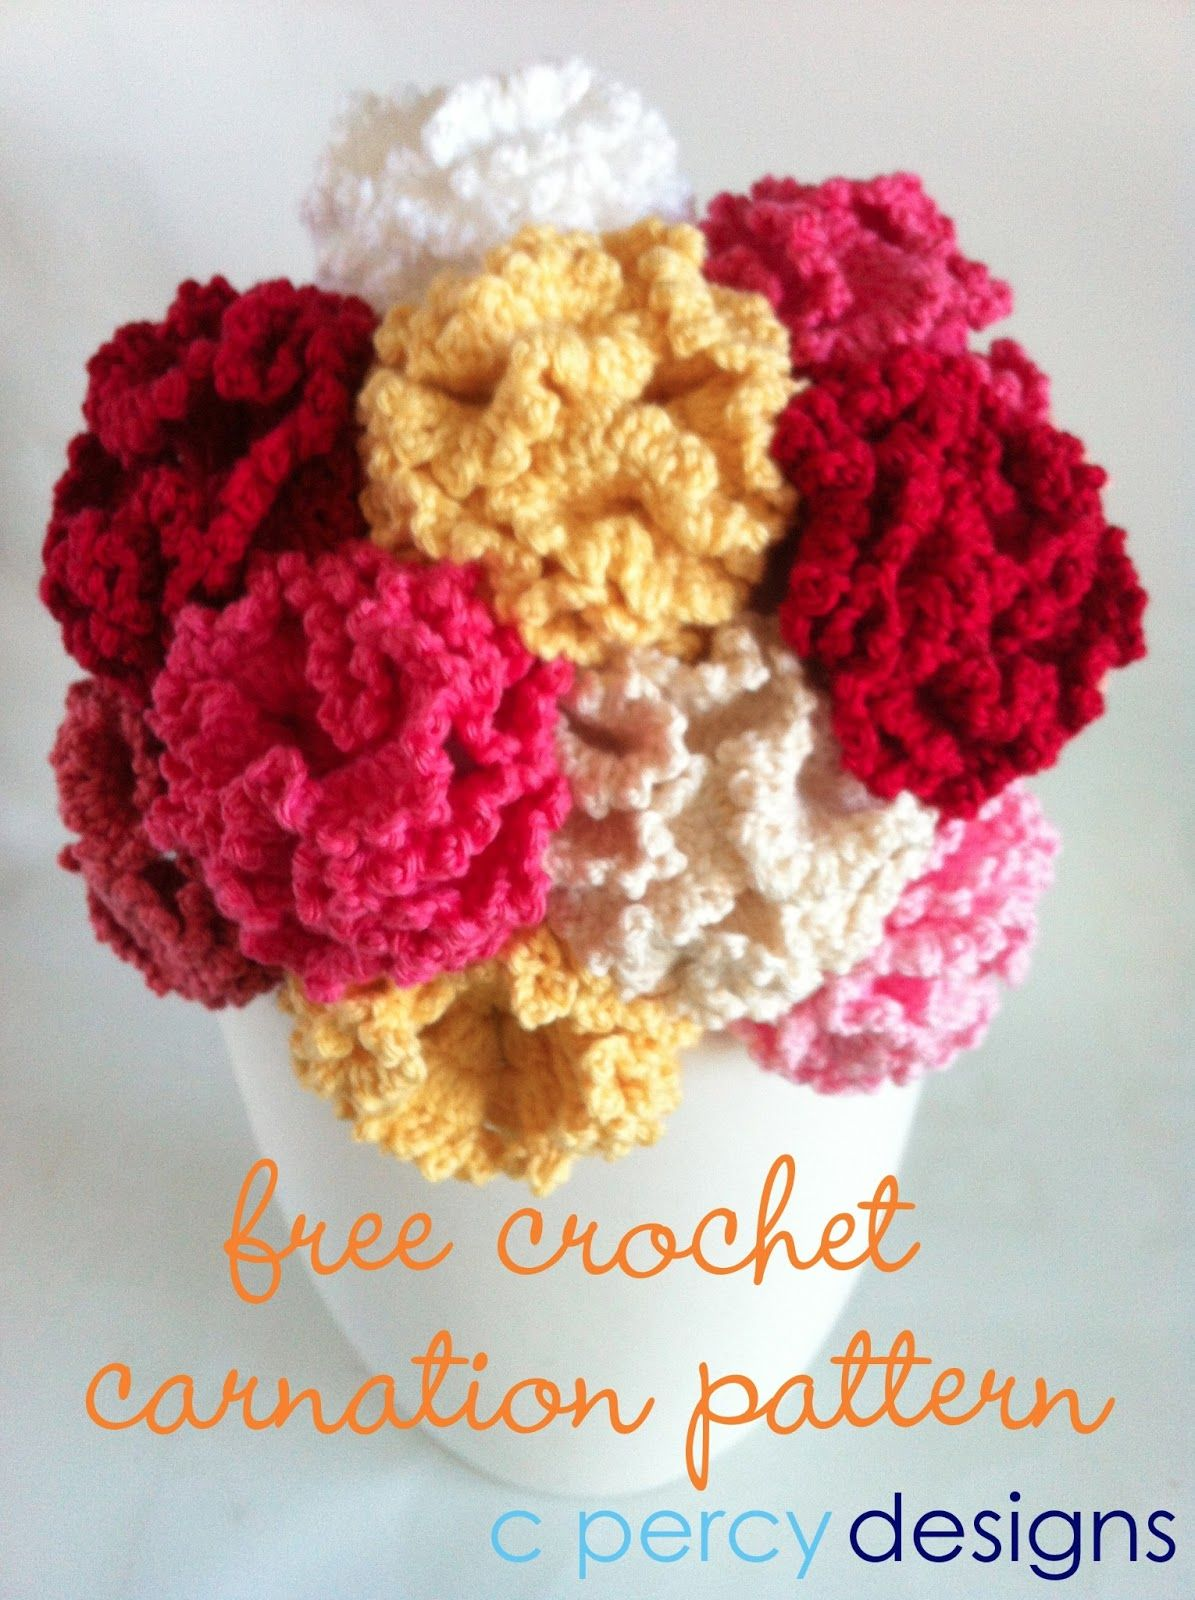 Free Crochet Carnation Pattern by Christine McInerney Percy of C ...